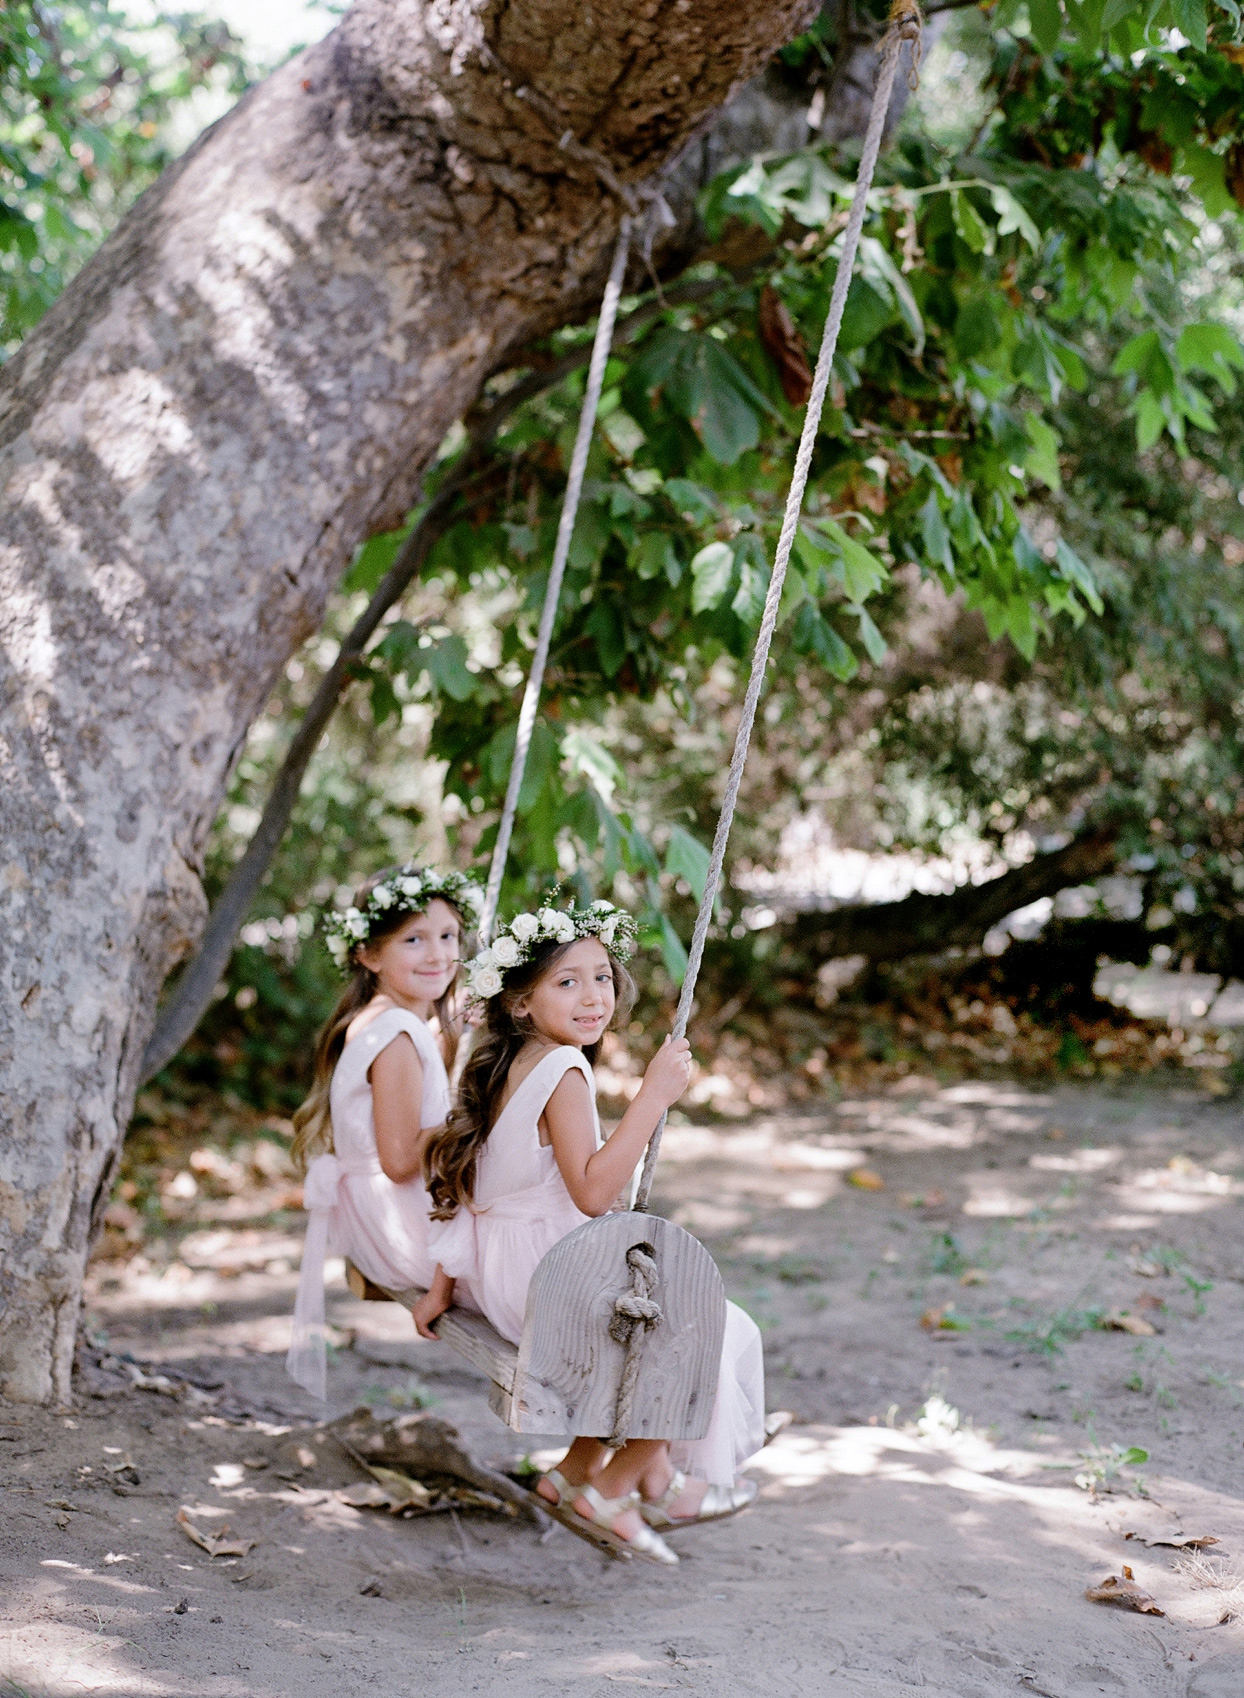 flower girls wearing floral crowns sitting on wooden swing hung from tree